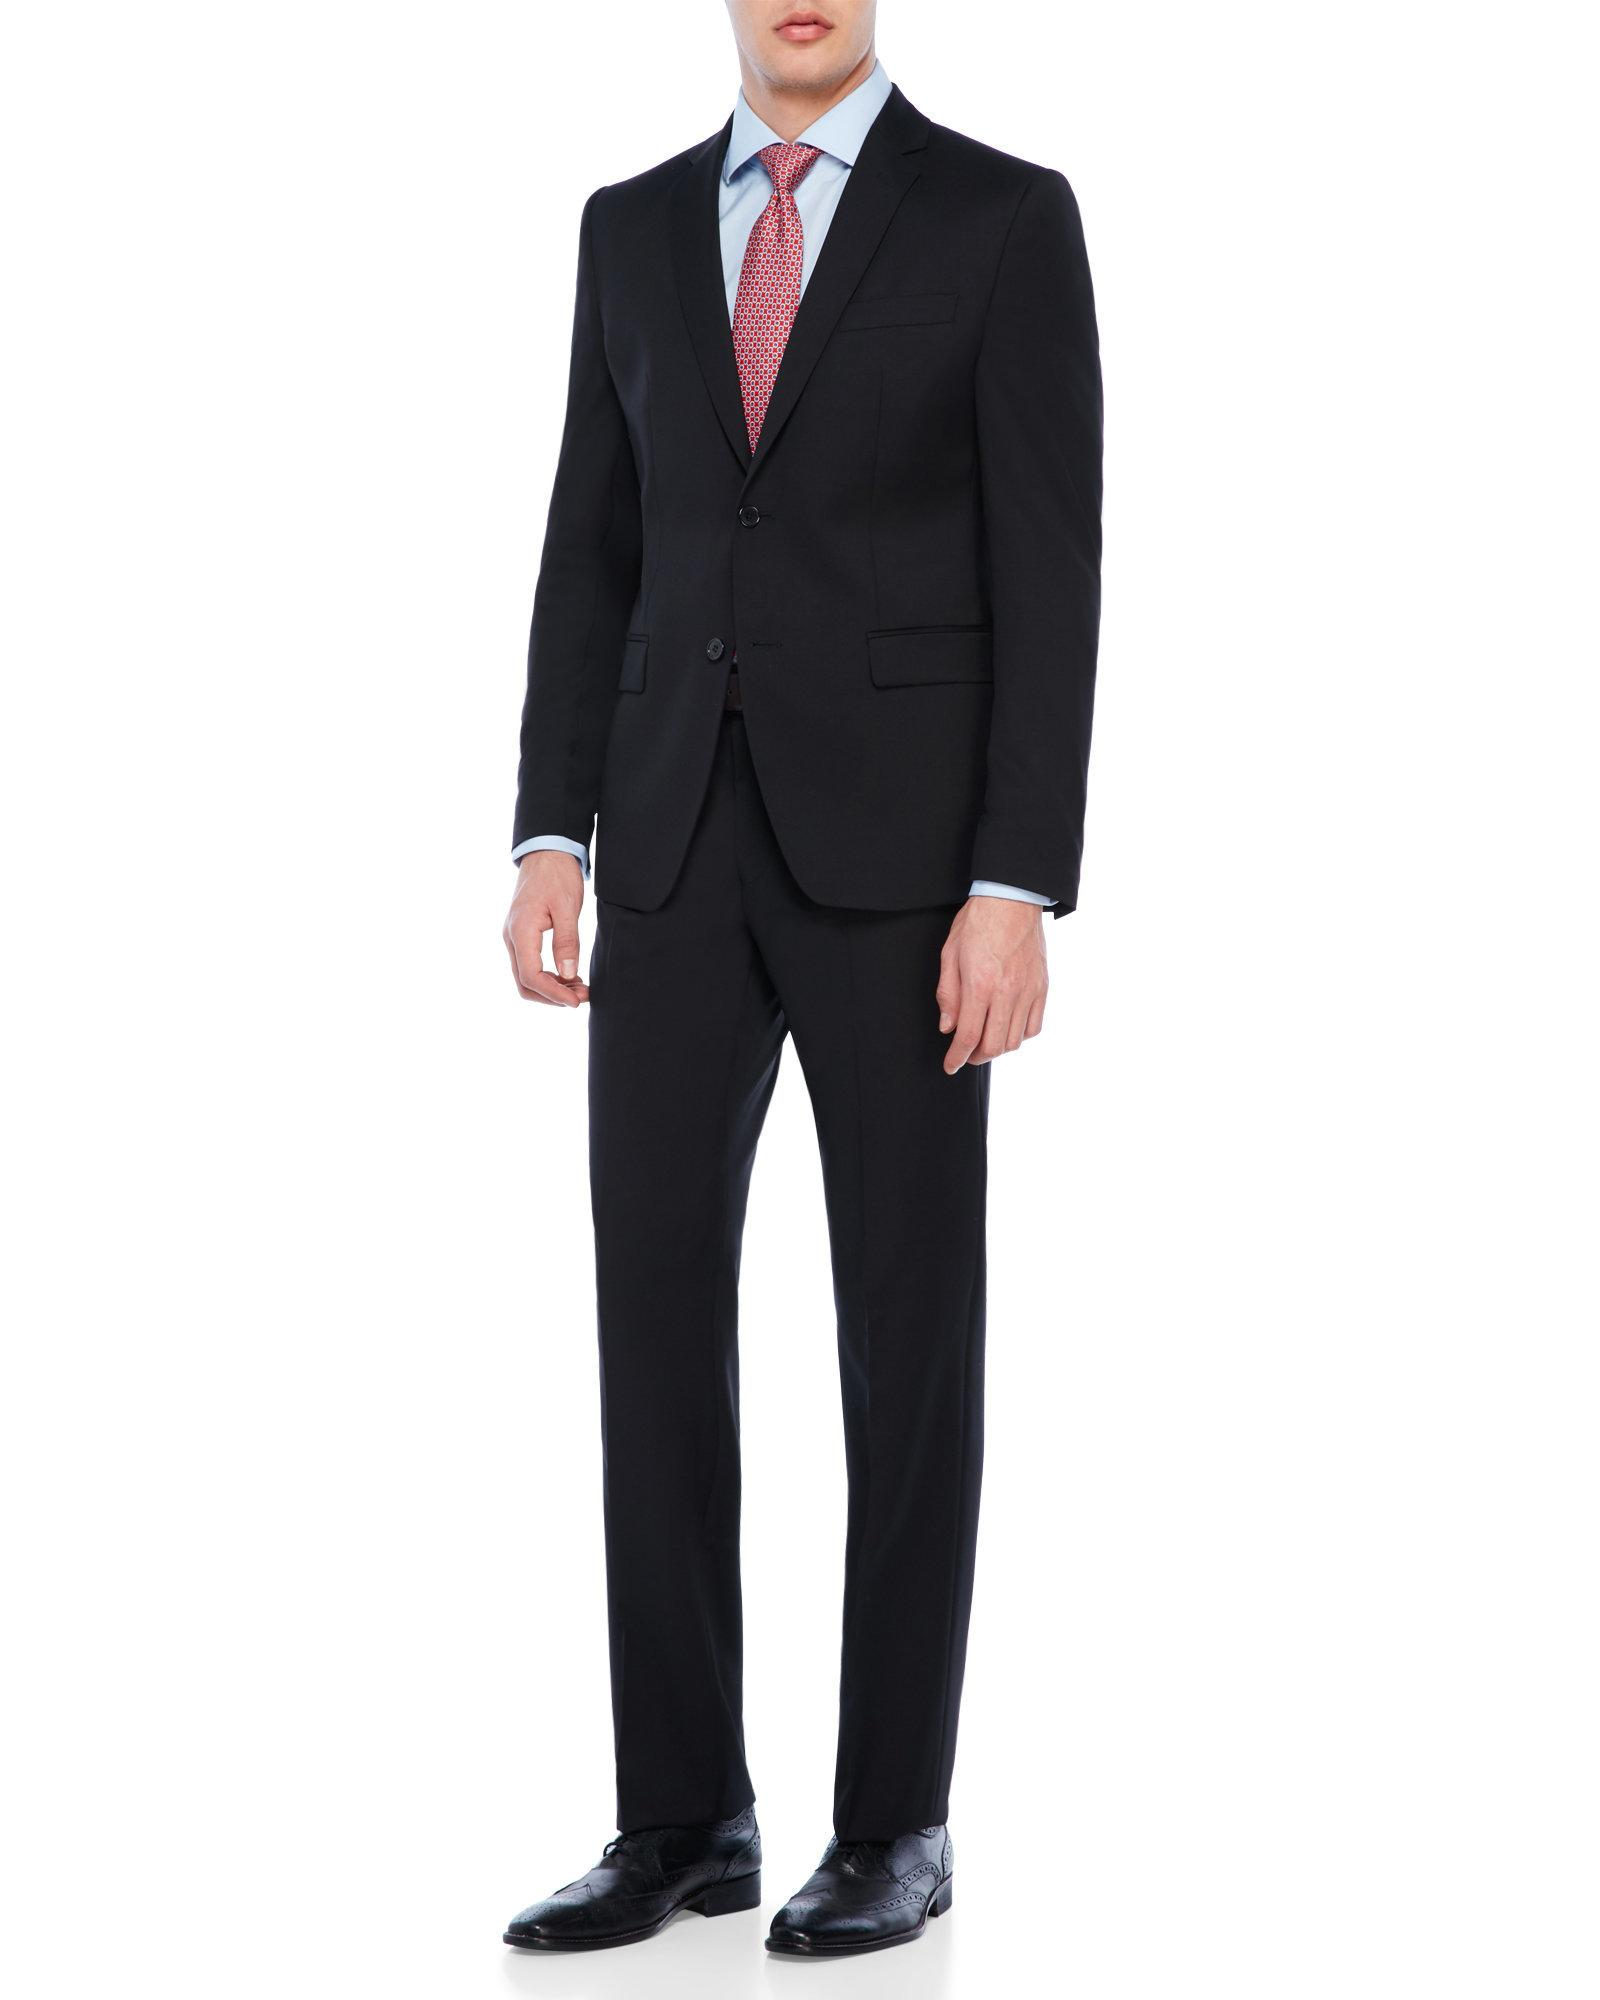 Versace Black Suit In Black For Men